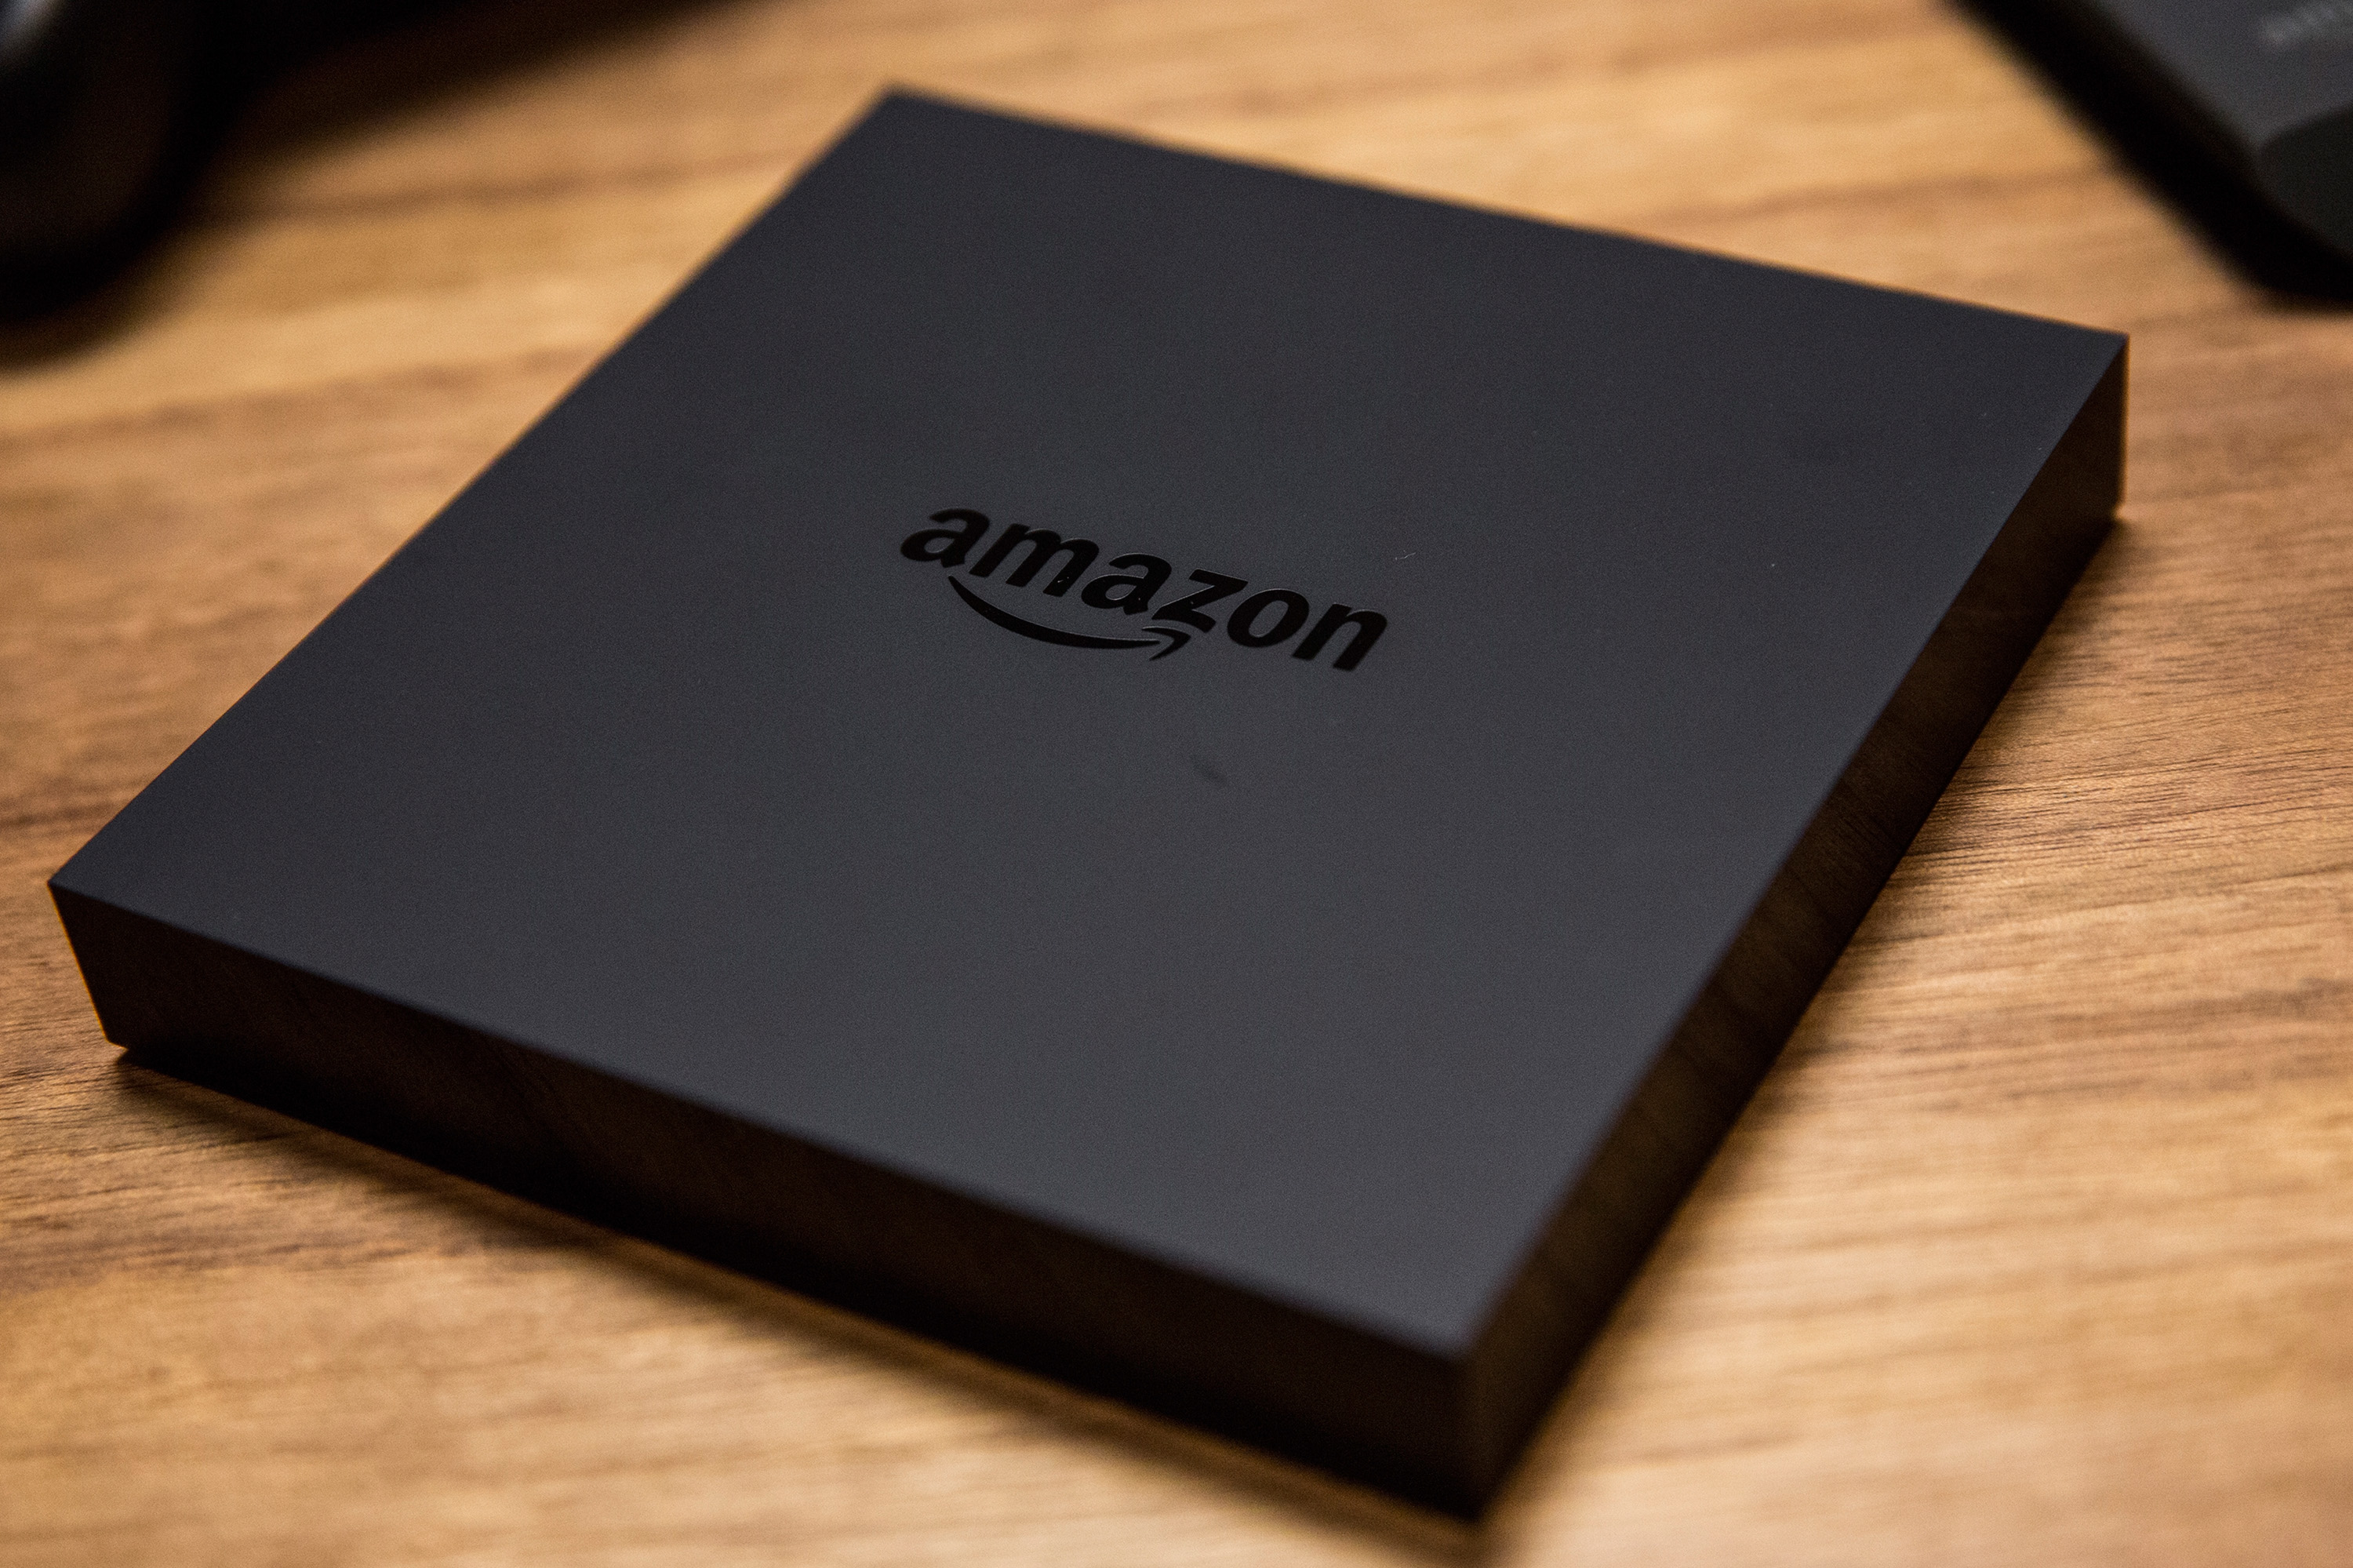 The Amazon Fire TV - a new device that allows users to stream video, music, photos, games and more through a television - is displayed at a media event on April 2, 2014 in New York City.